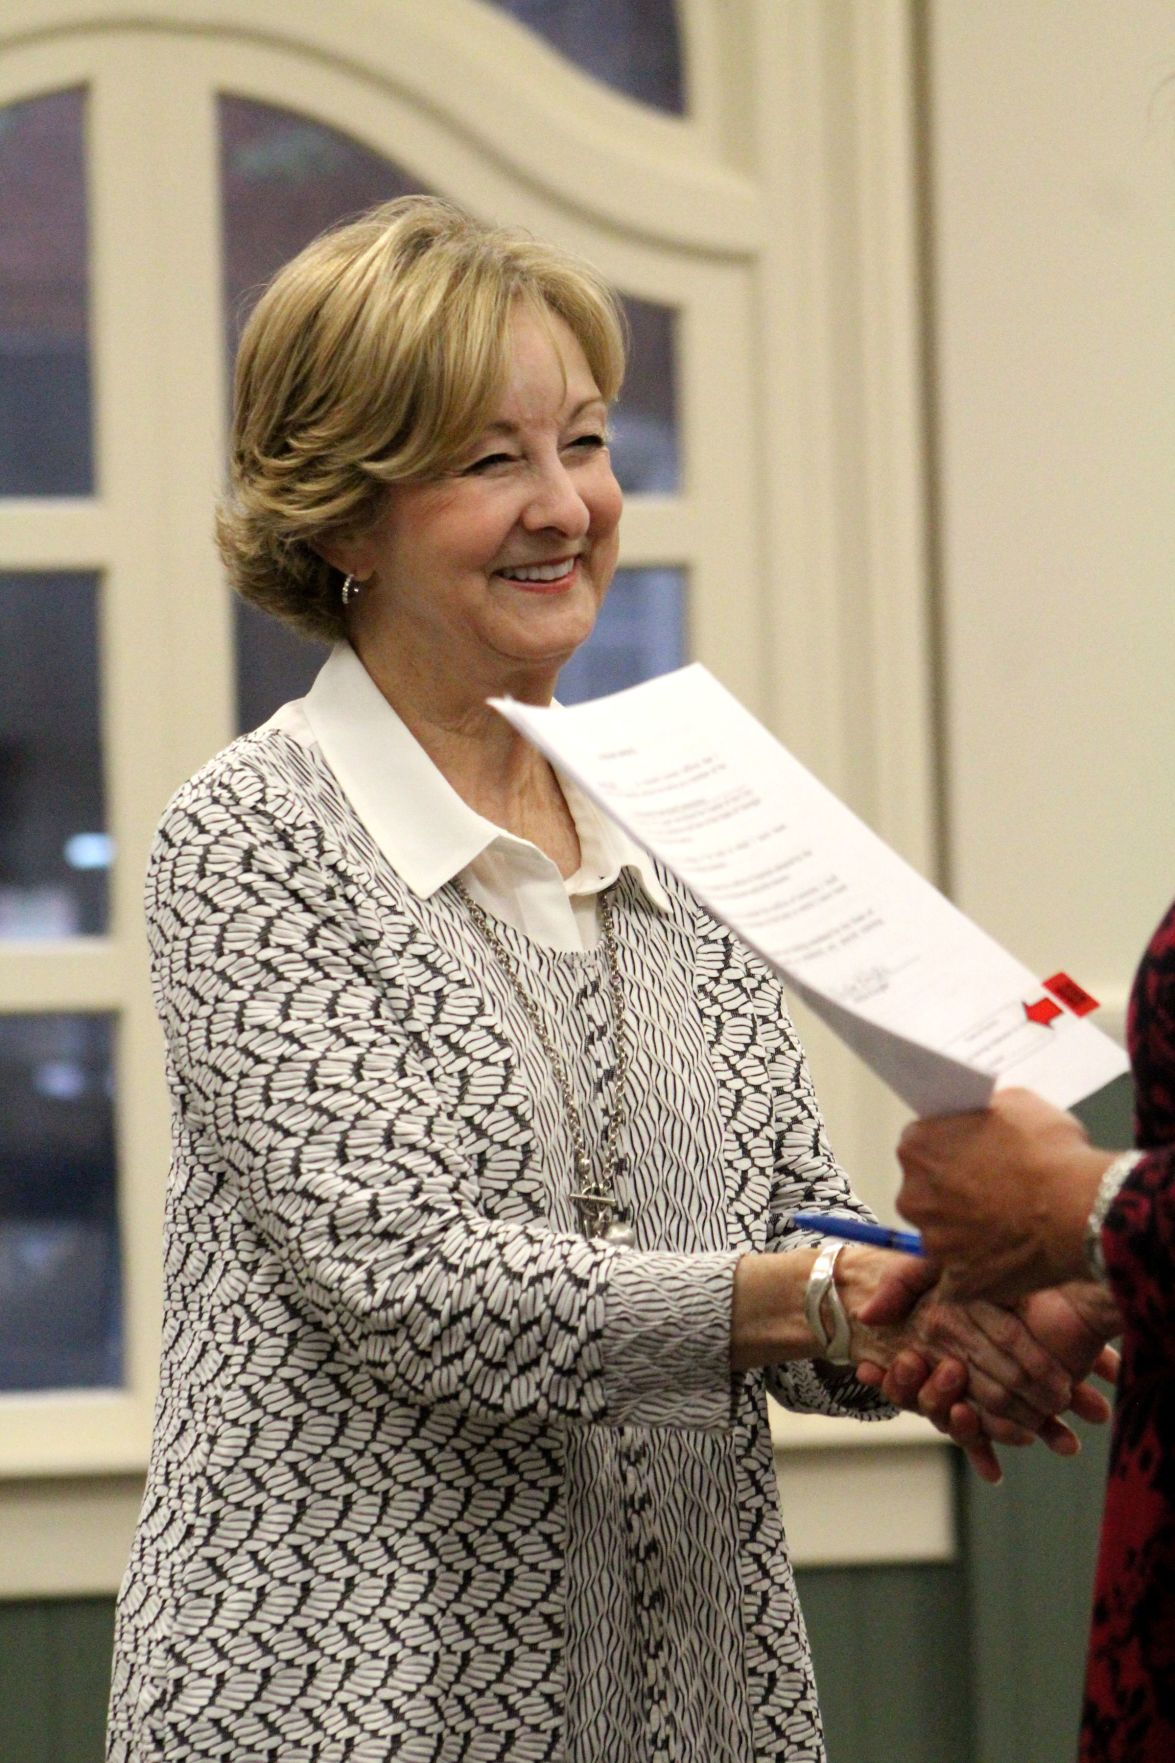 Melba Knight was sworn in to the Tifton Historic Preservation Commission.